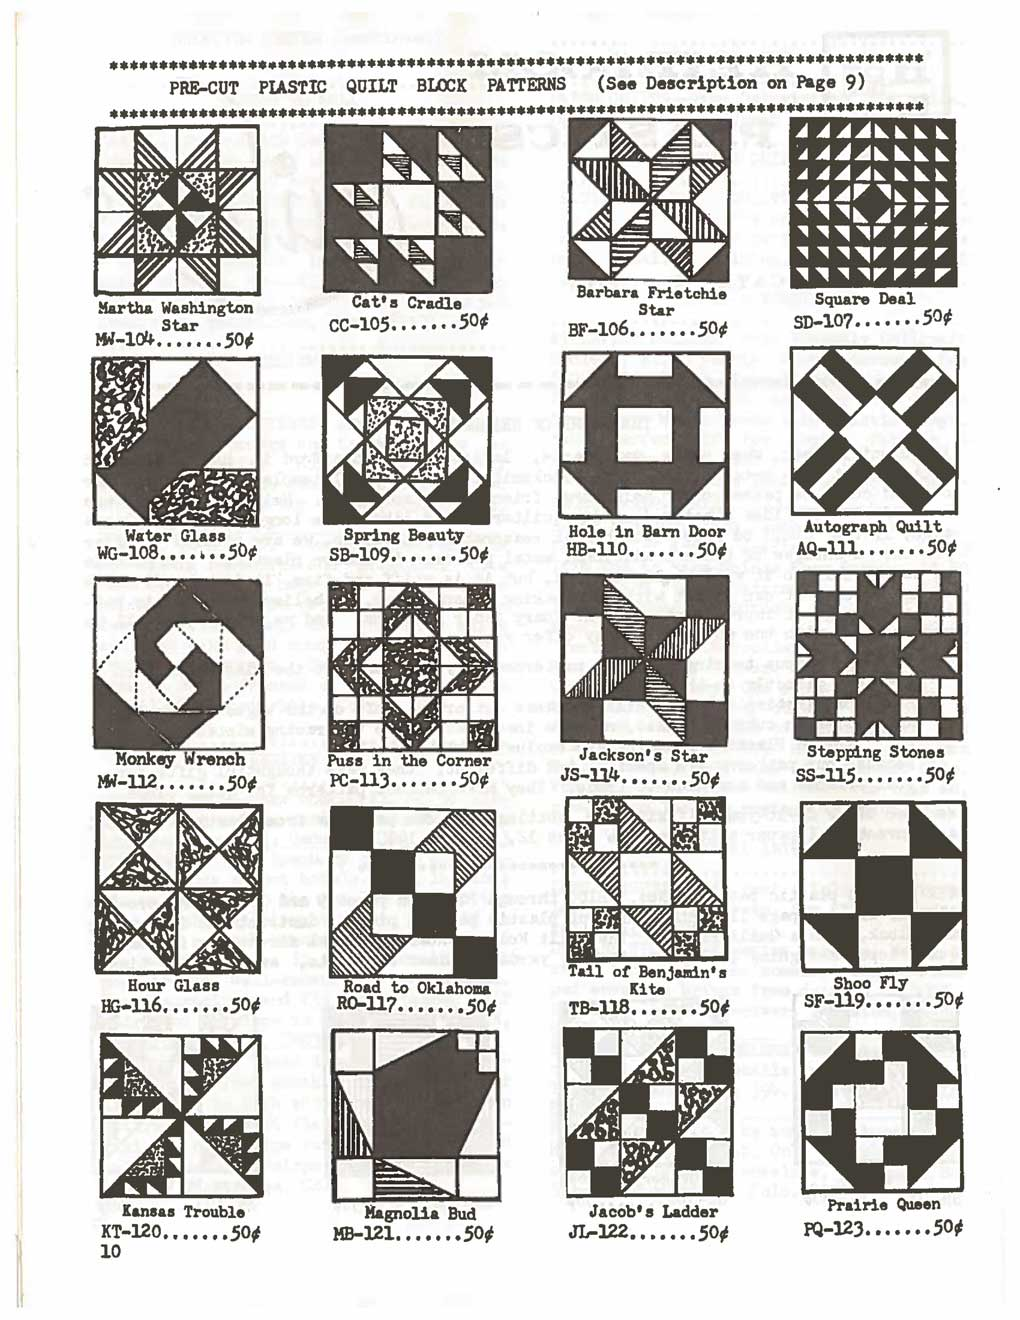 These are a few of the traditional block patterns available as template sets from Heirloom Plastics, from the first issue of Quilters Newsletter, 1969.